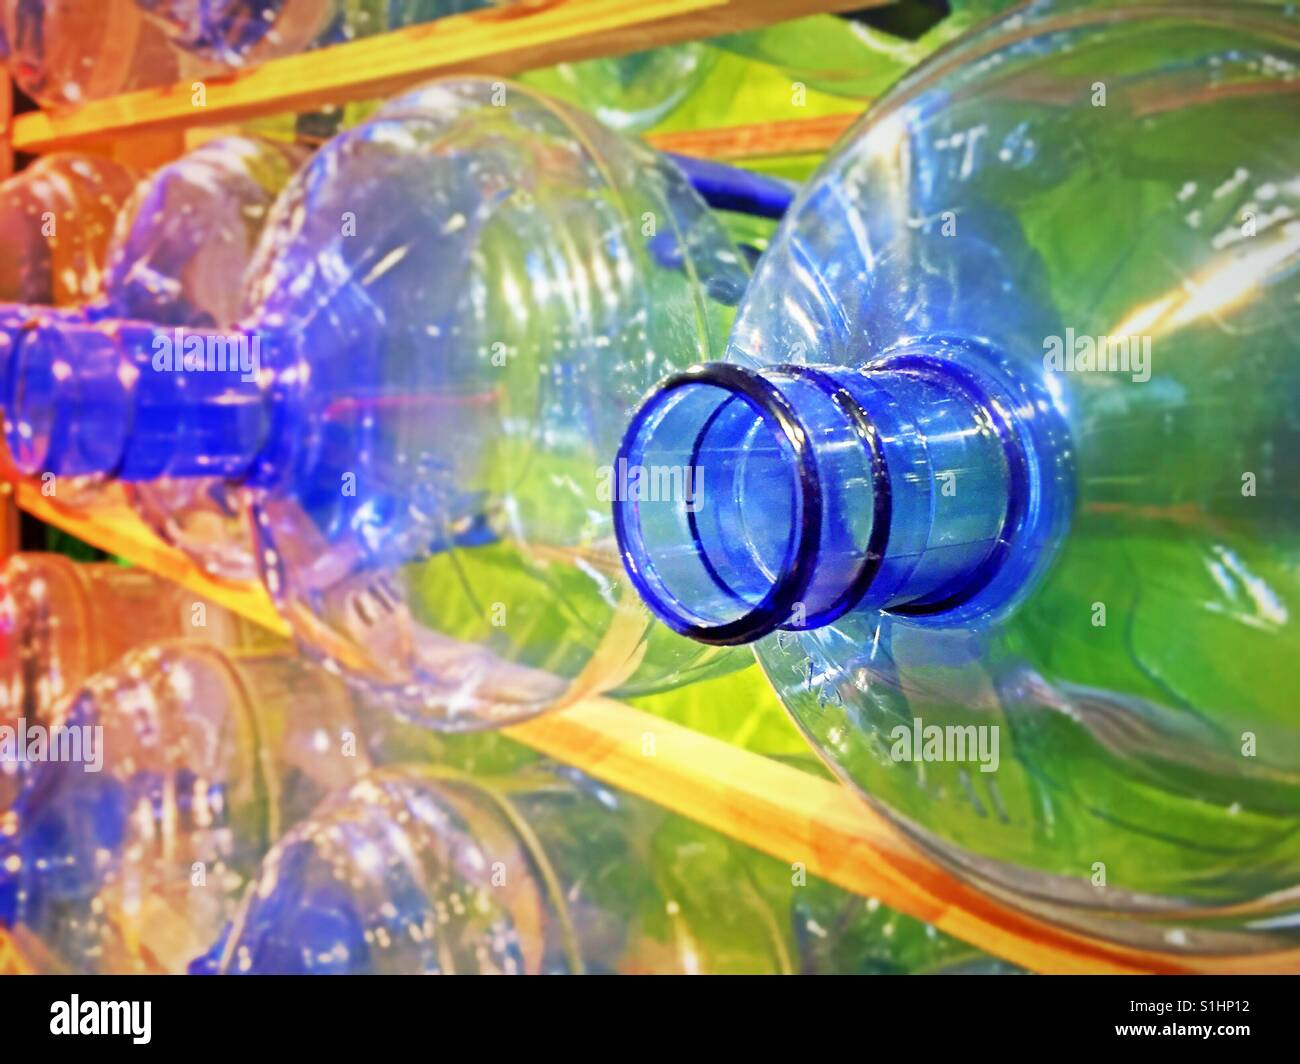 Rack of empty brightly colored plastic water bottles, USA. - Stock Image